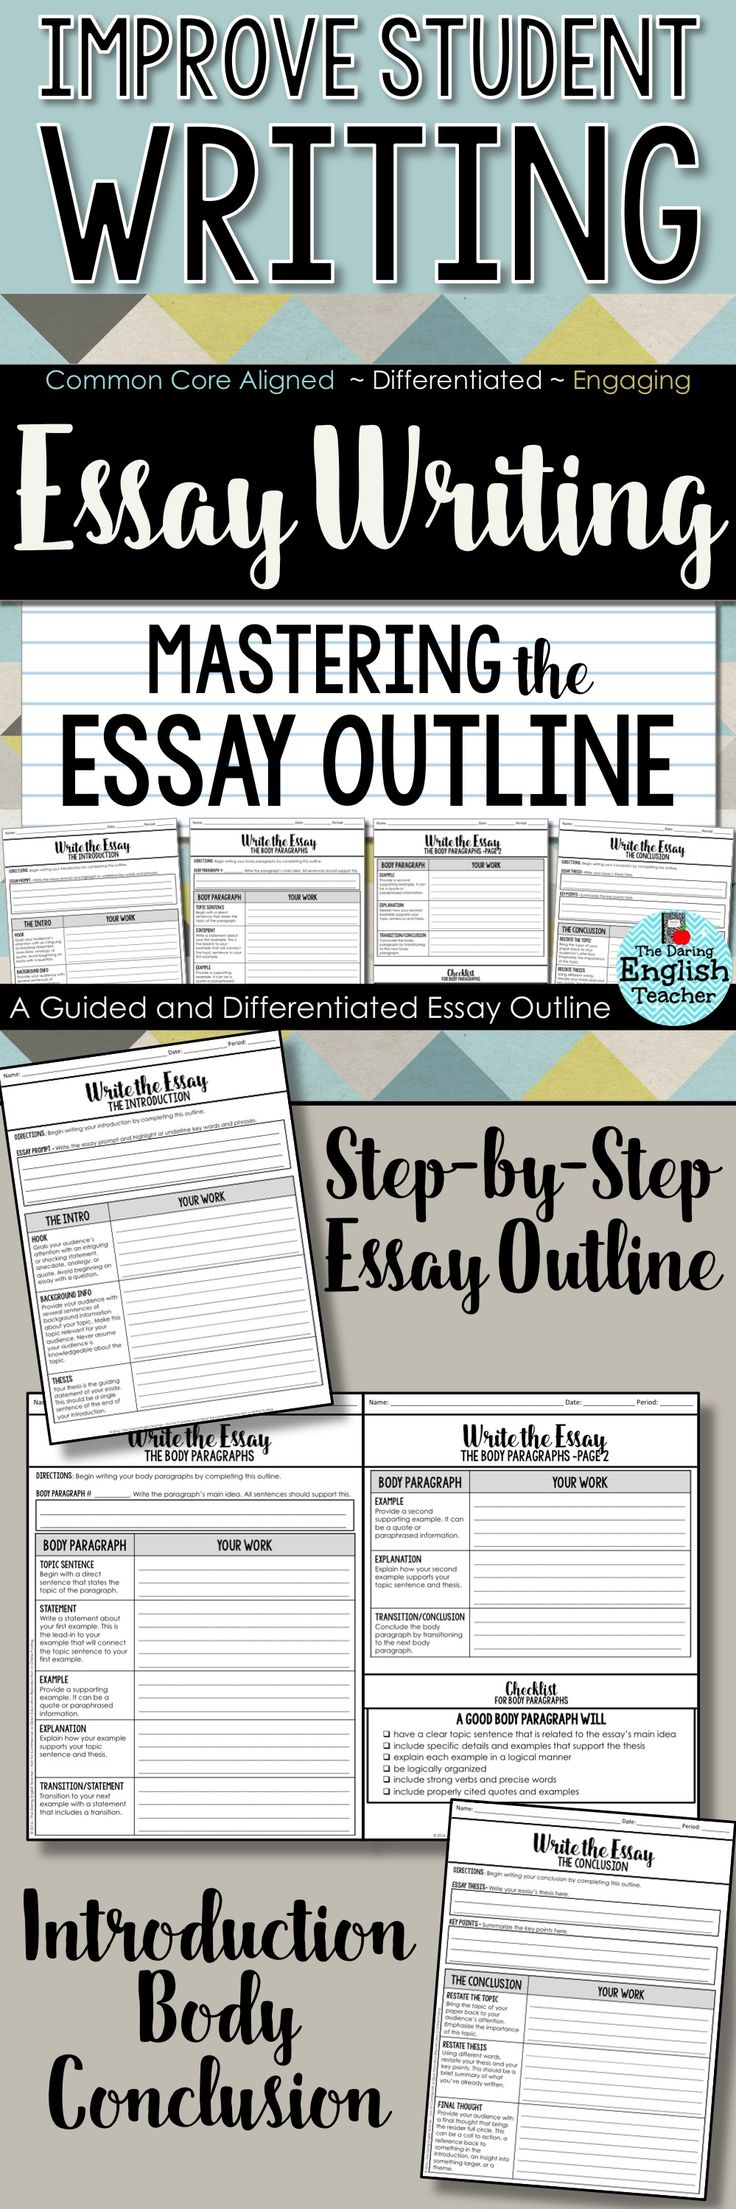 Expository Essay Thesis Statement  Best Ideas About Essay Writing Essay Writing Essay Writing Mastering The  Essay Outline Guided Instructions How To Write A Good Introductory Paragraph For An Essay also Examples Of A Satire Essay Teaching Essay Writing To High School Students How To Write A Good  Writing An Illustration Essay